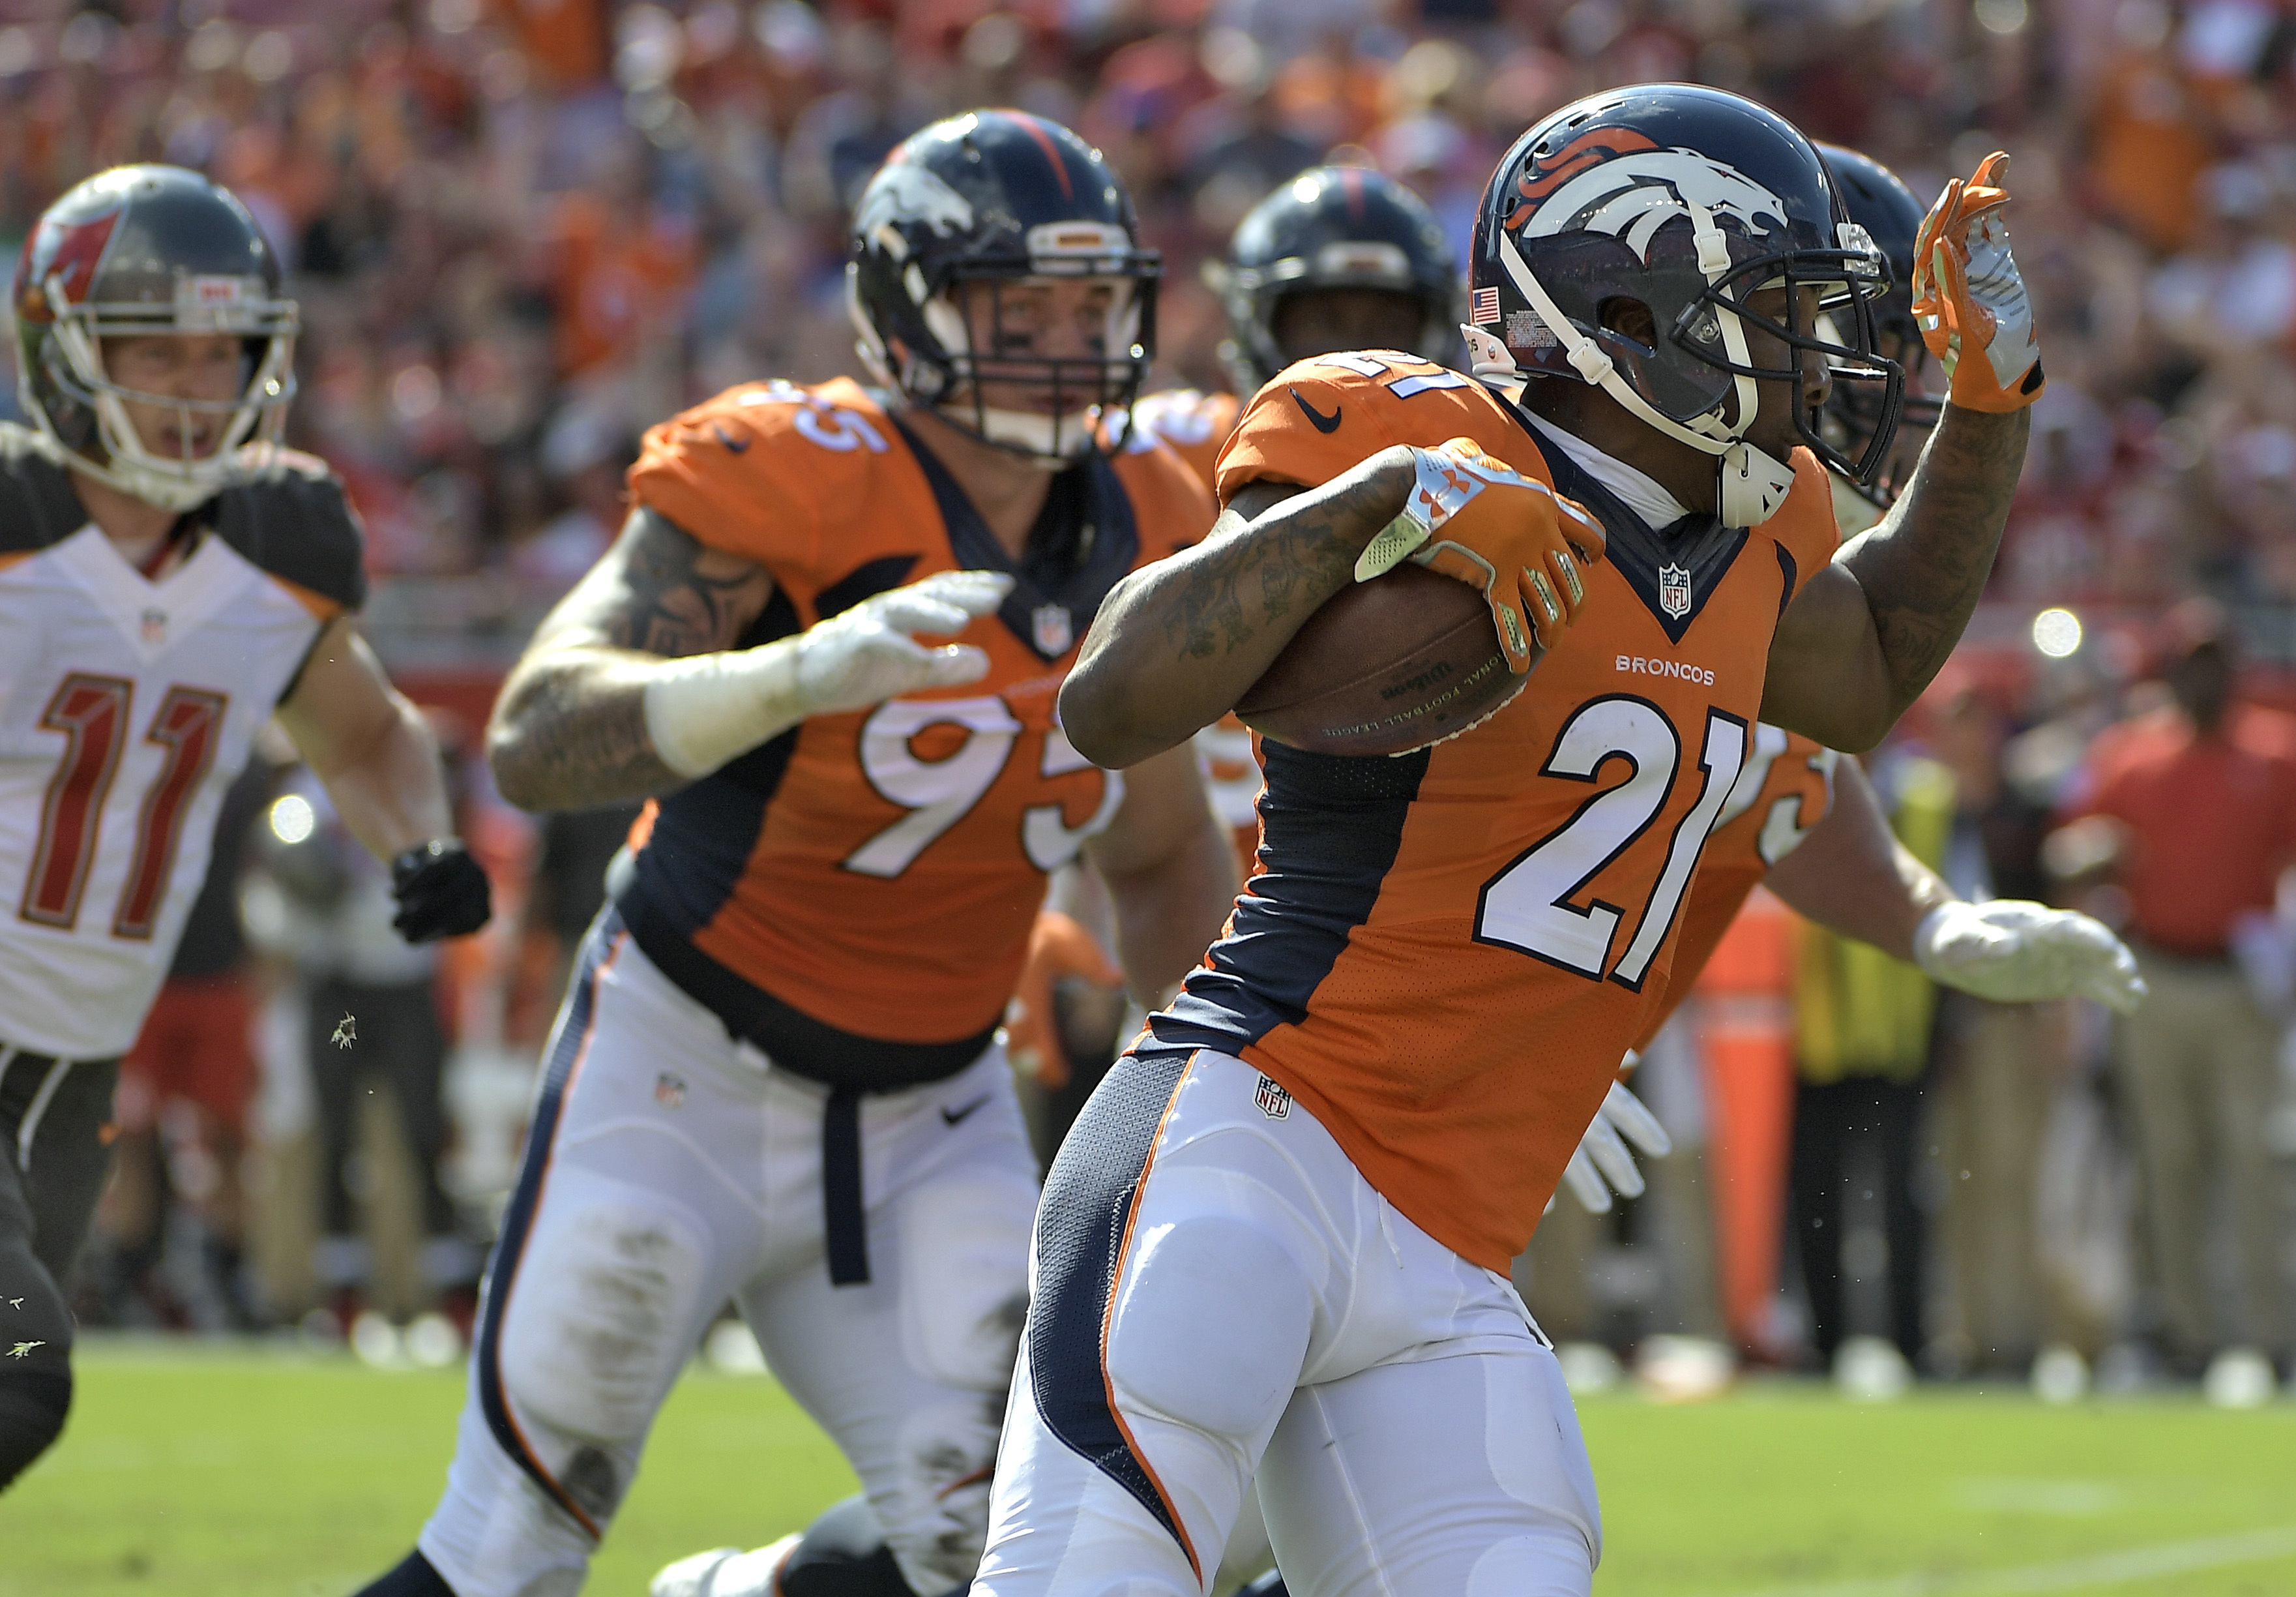 FILE - In a Sunday, Oct. 2, 2016 file photo, Denver Broncos cornerback Aqib Talib (21) runs with the football after intercepting a pass by Tampa Bay Buccaneers quarterback Jameis Winston during the first quarter of an NFL football game, in Tampa, Fla.  Co